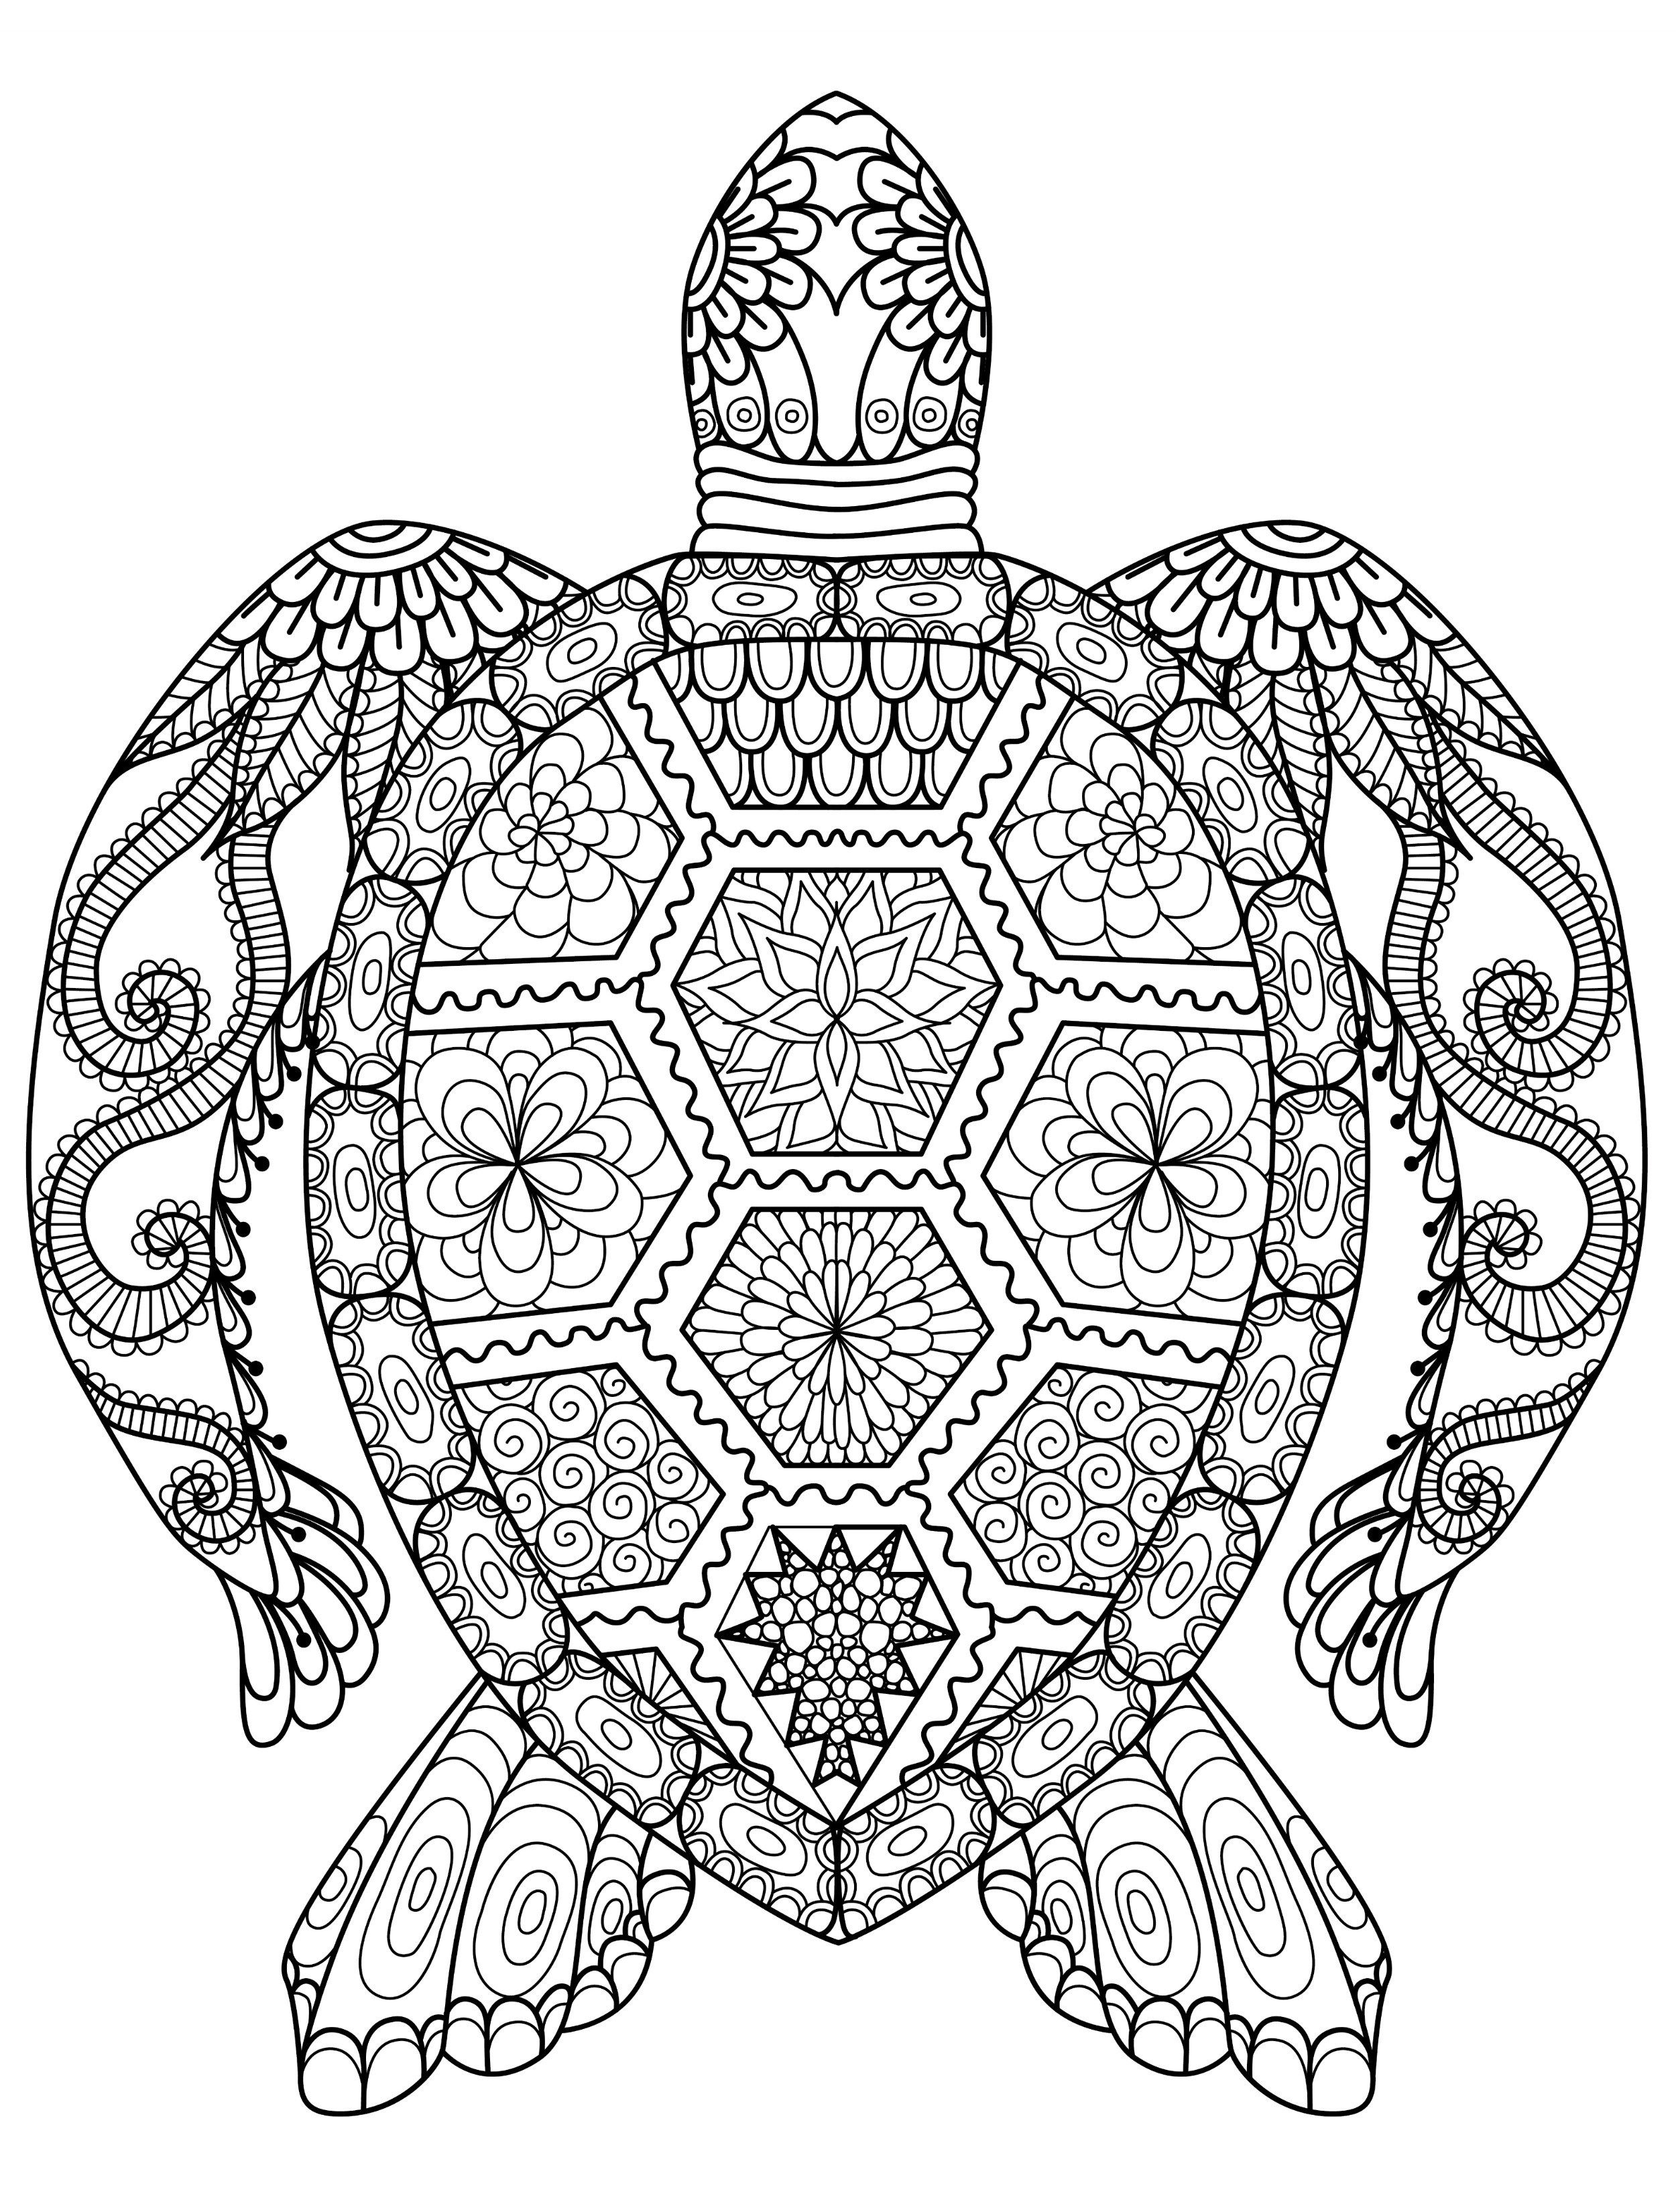 cool pictures to color 10 cool coloring pages free premium templates color to cool pictures